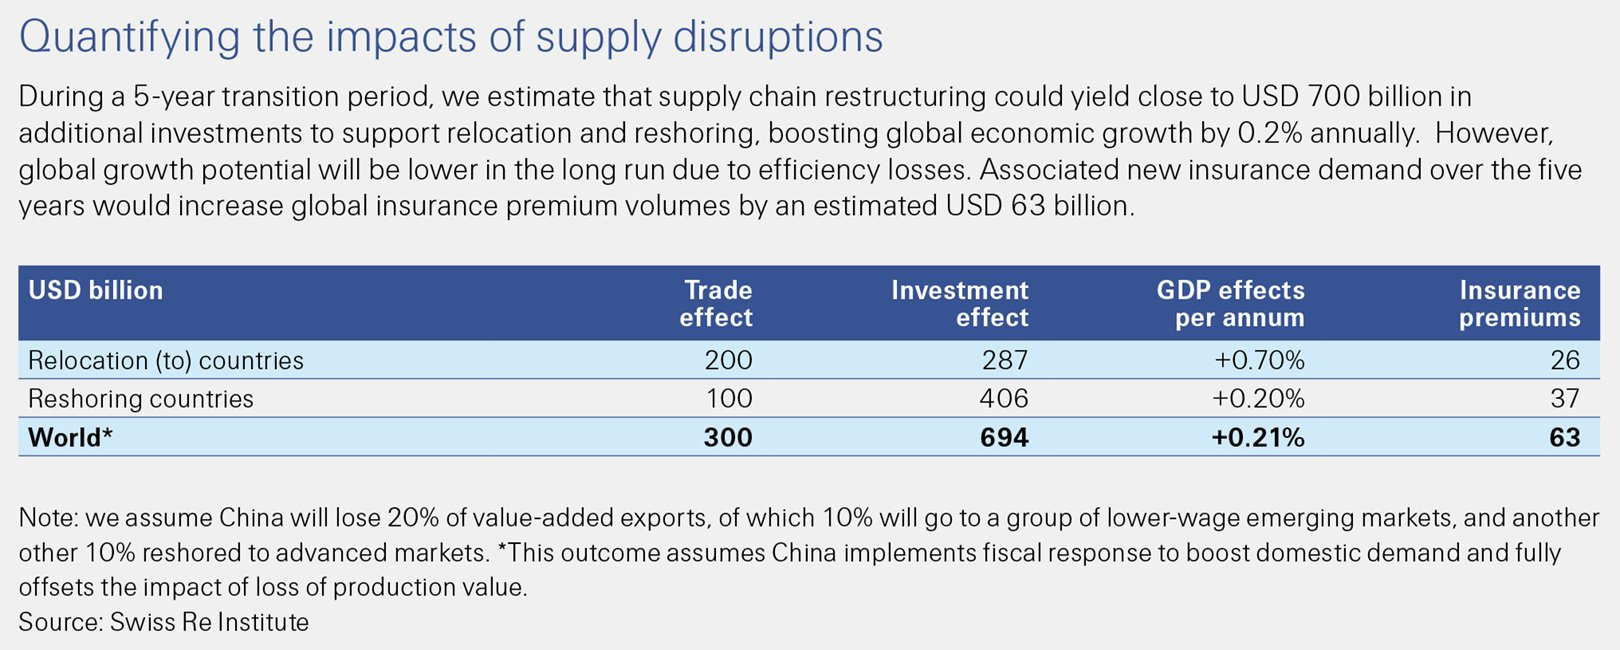 This Swiss Re Institute sigma 6/2020 figure shows the impacts of supply disruptions quantified.